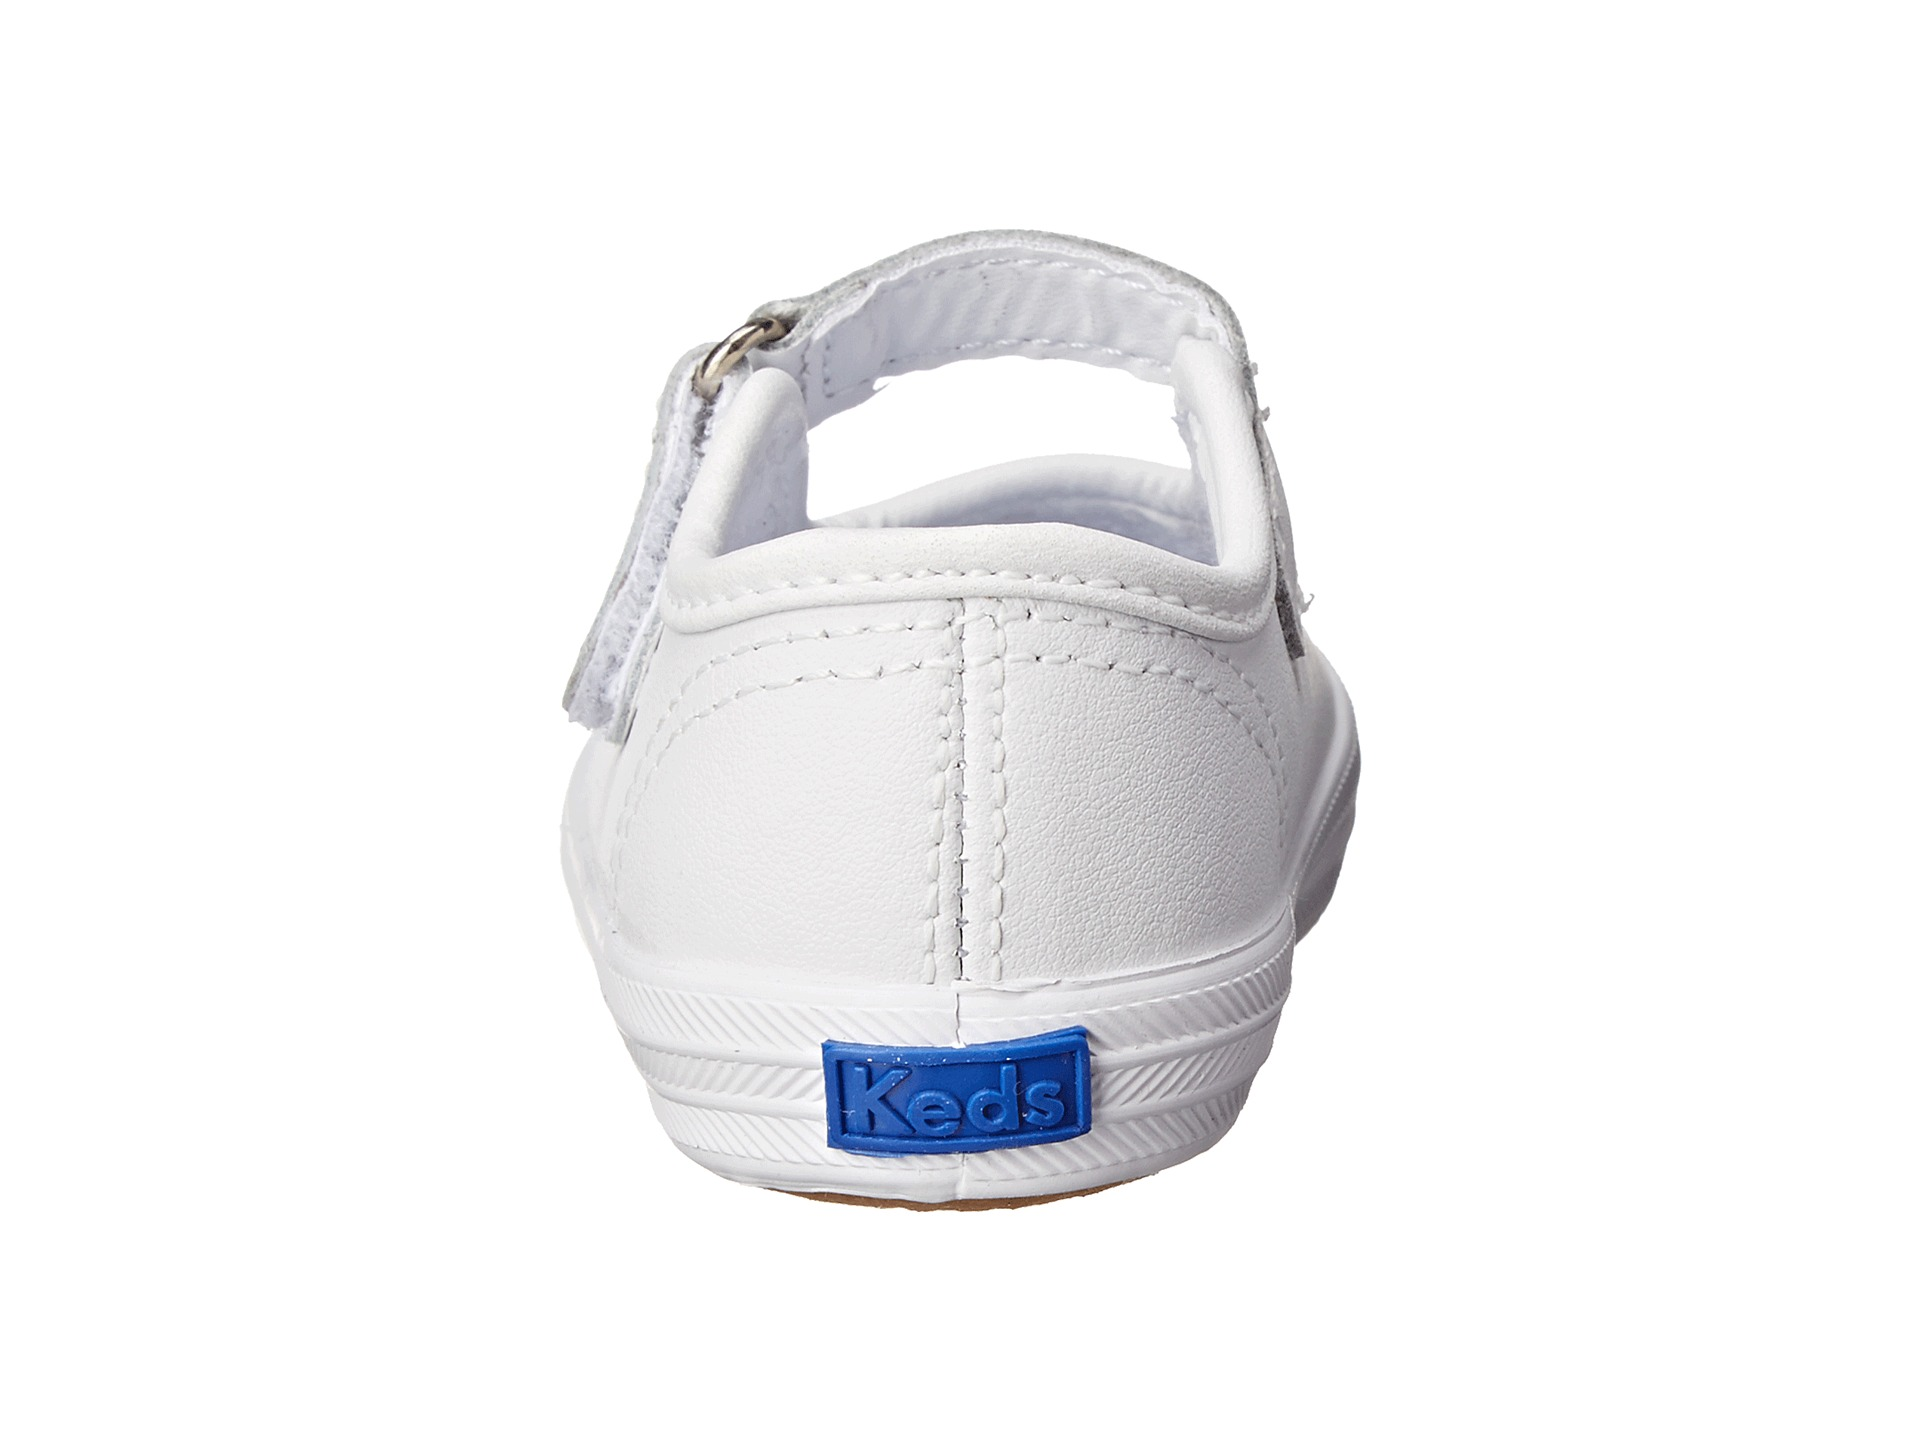 keds champion leather mary jane